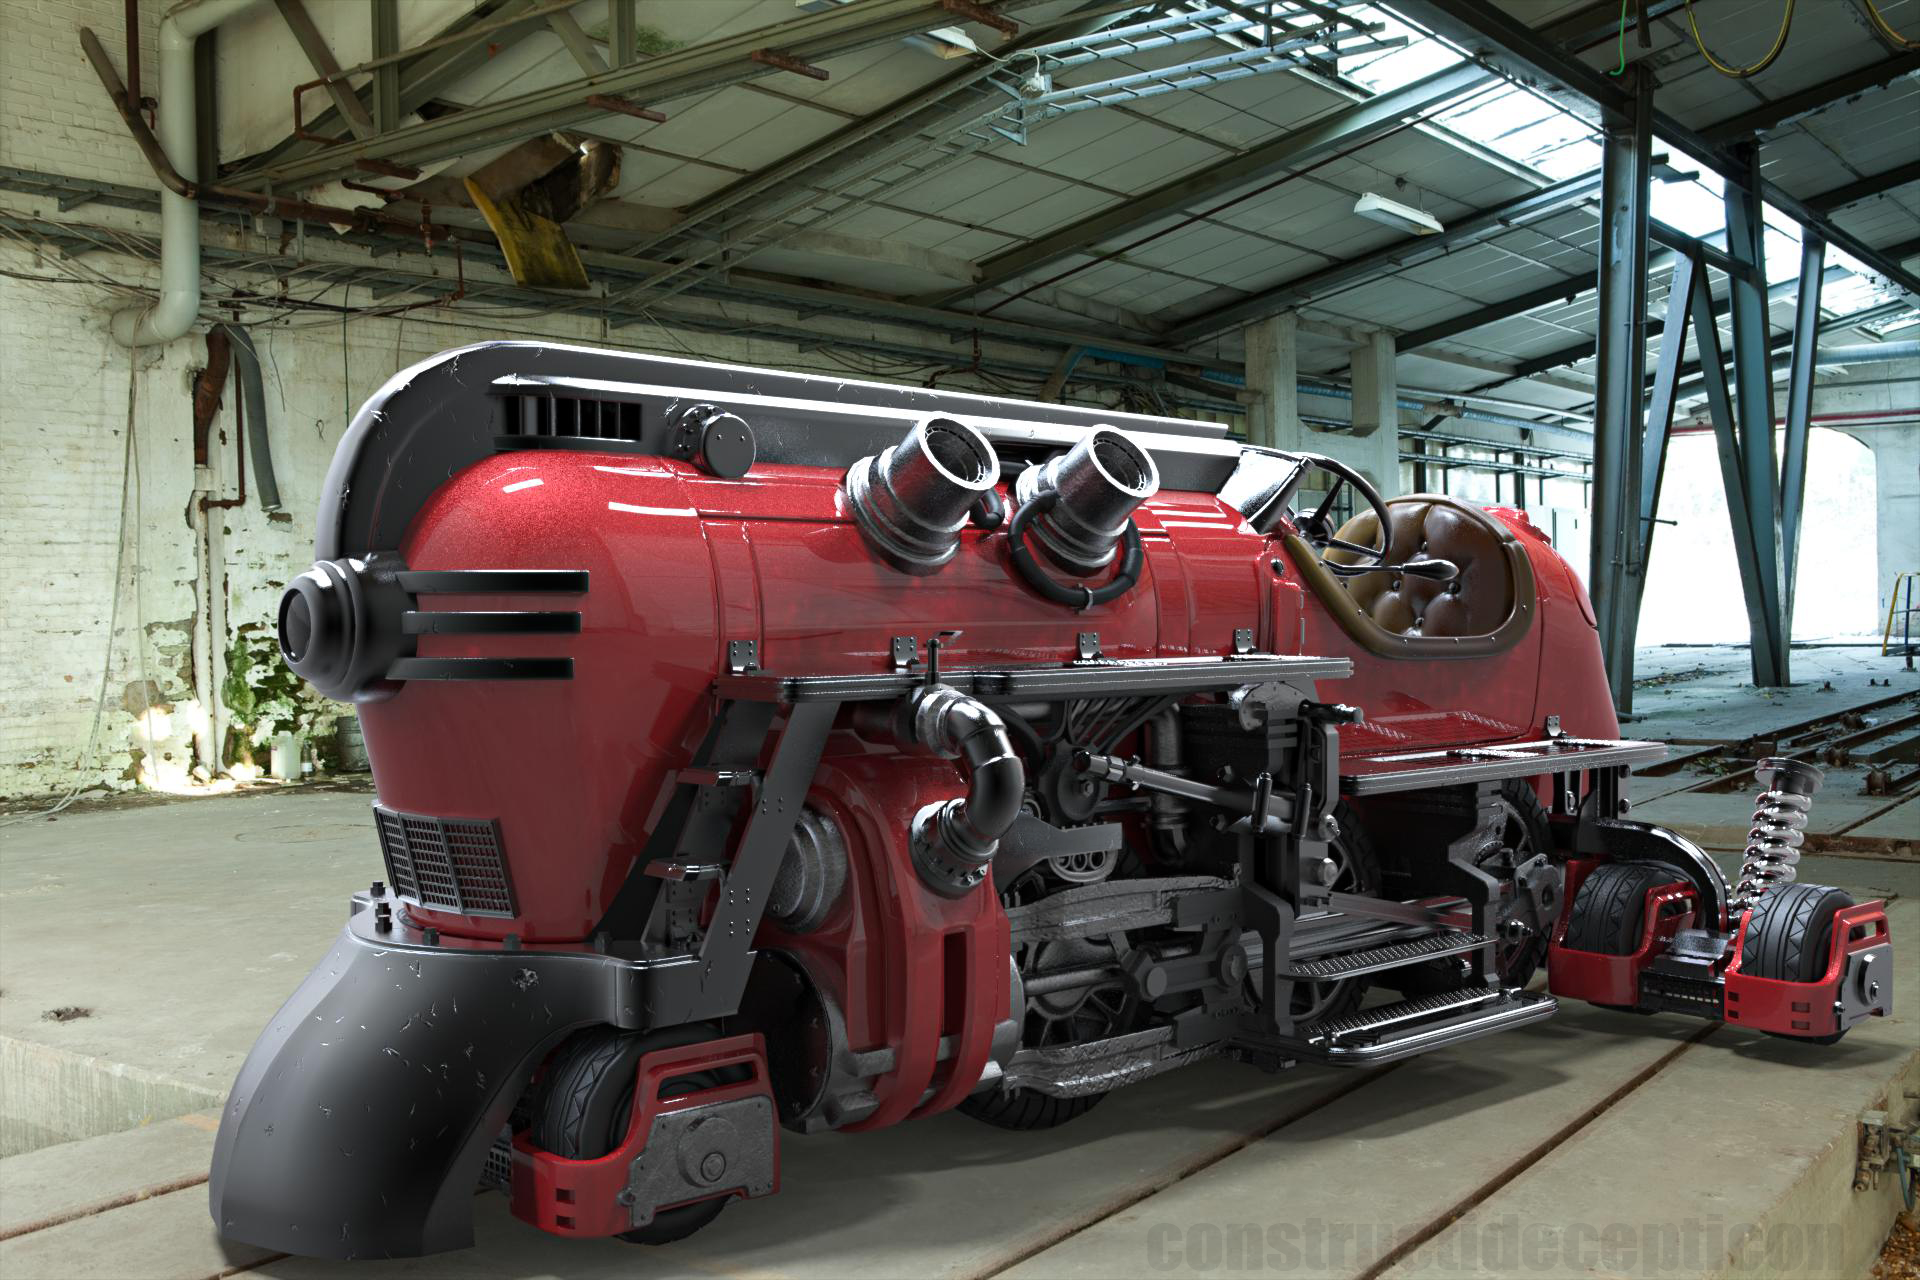 The Futuristic Steam Train Of Our Dreams Retro Futuristic Train Steam Locomotive